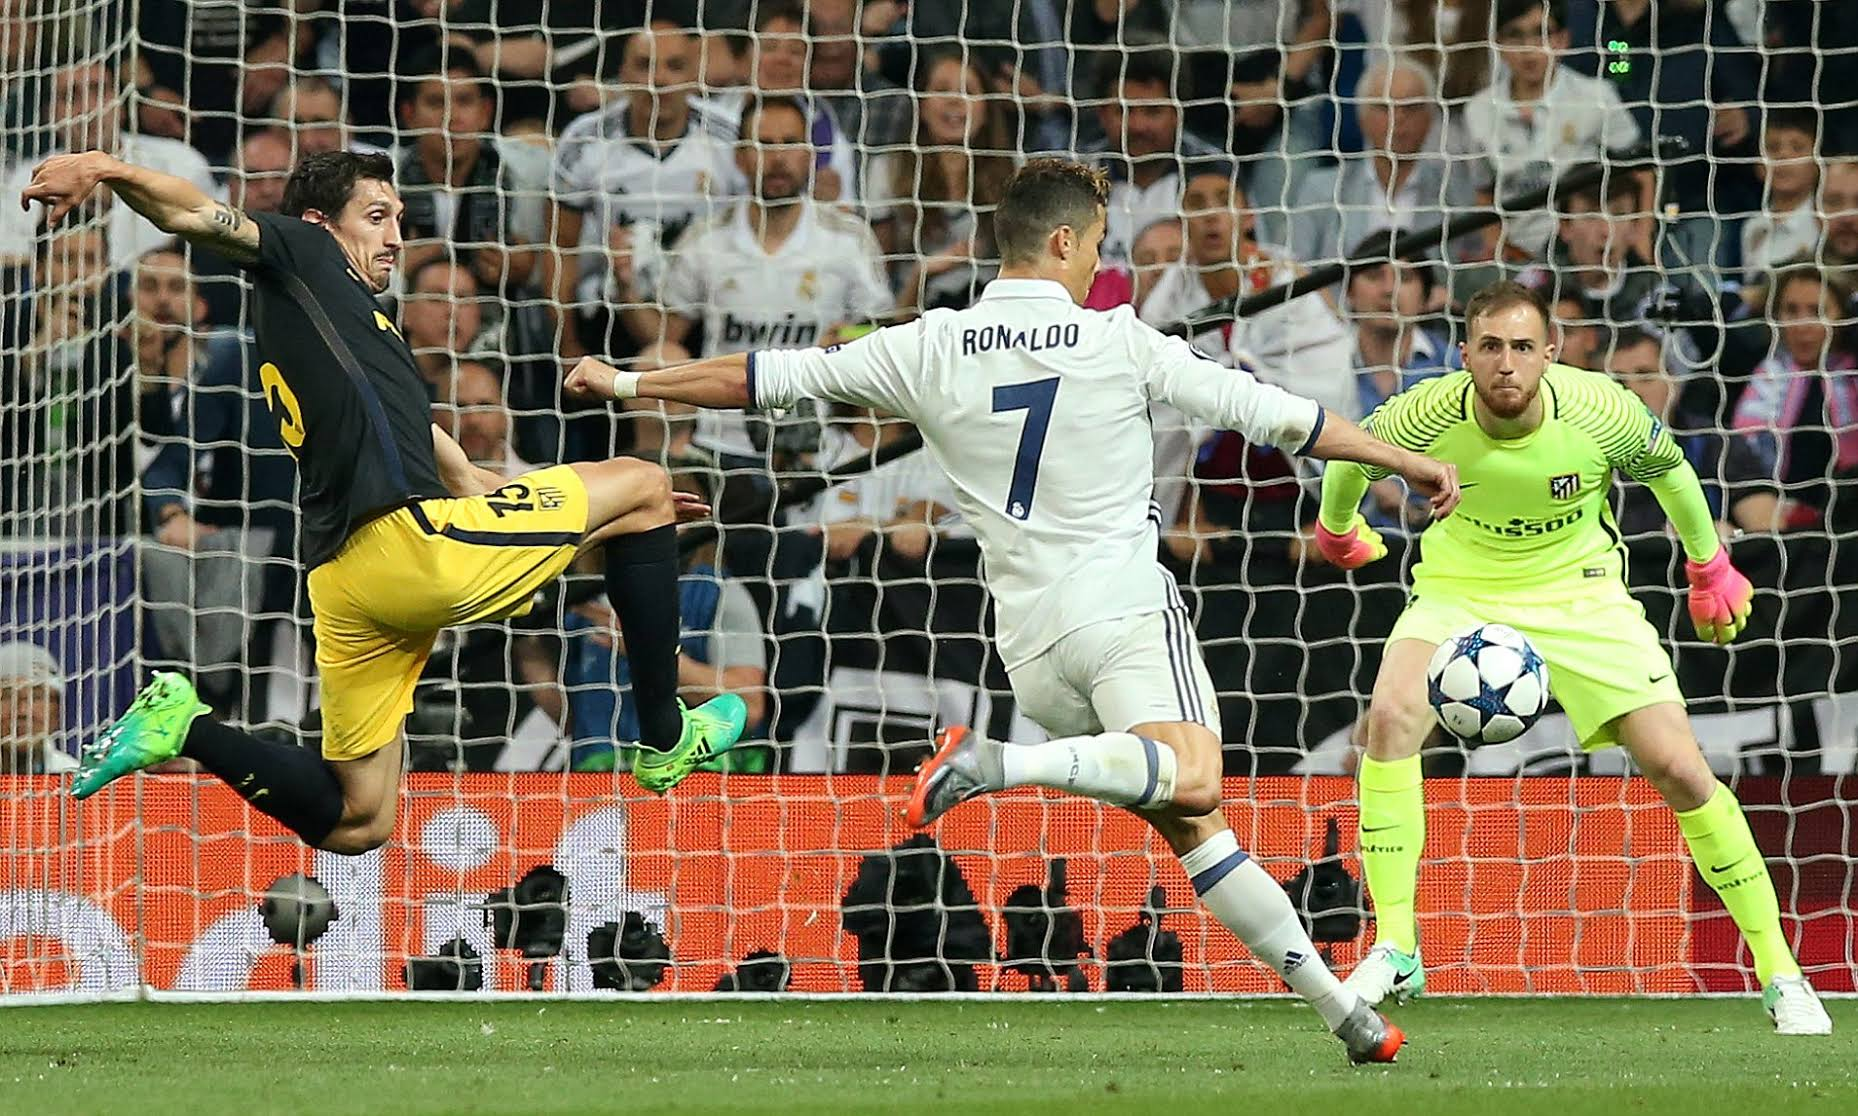 Real Madrid 30 Atletico Madrid Ronaldo Steals The Show